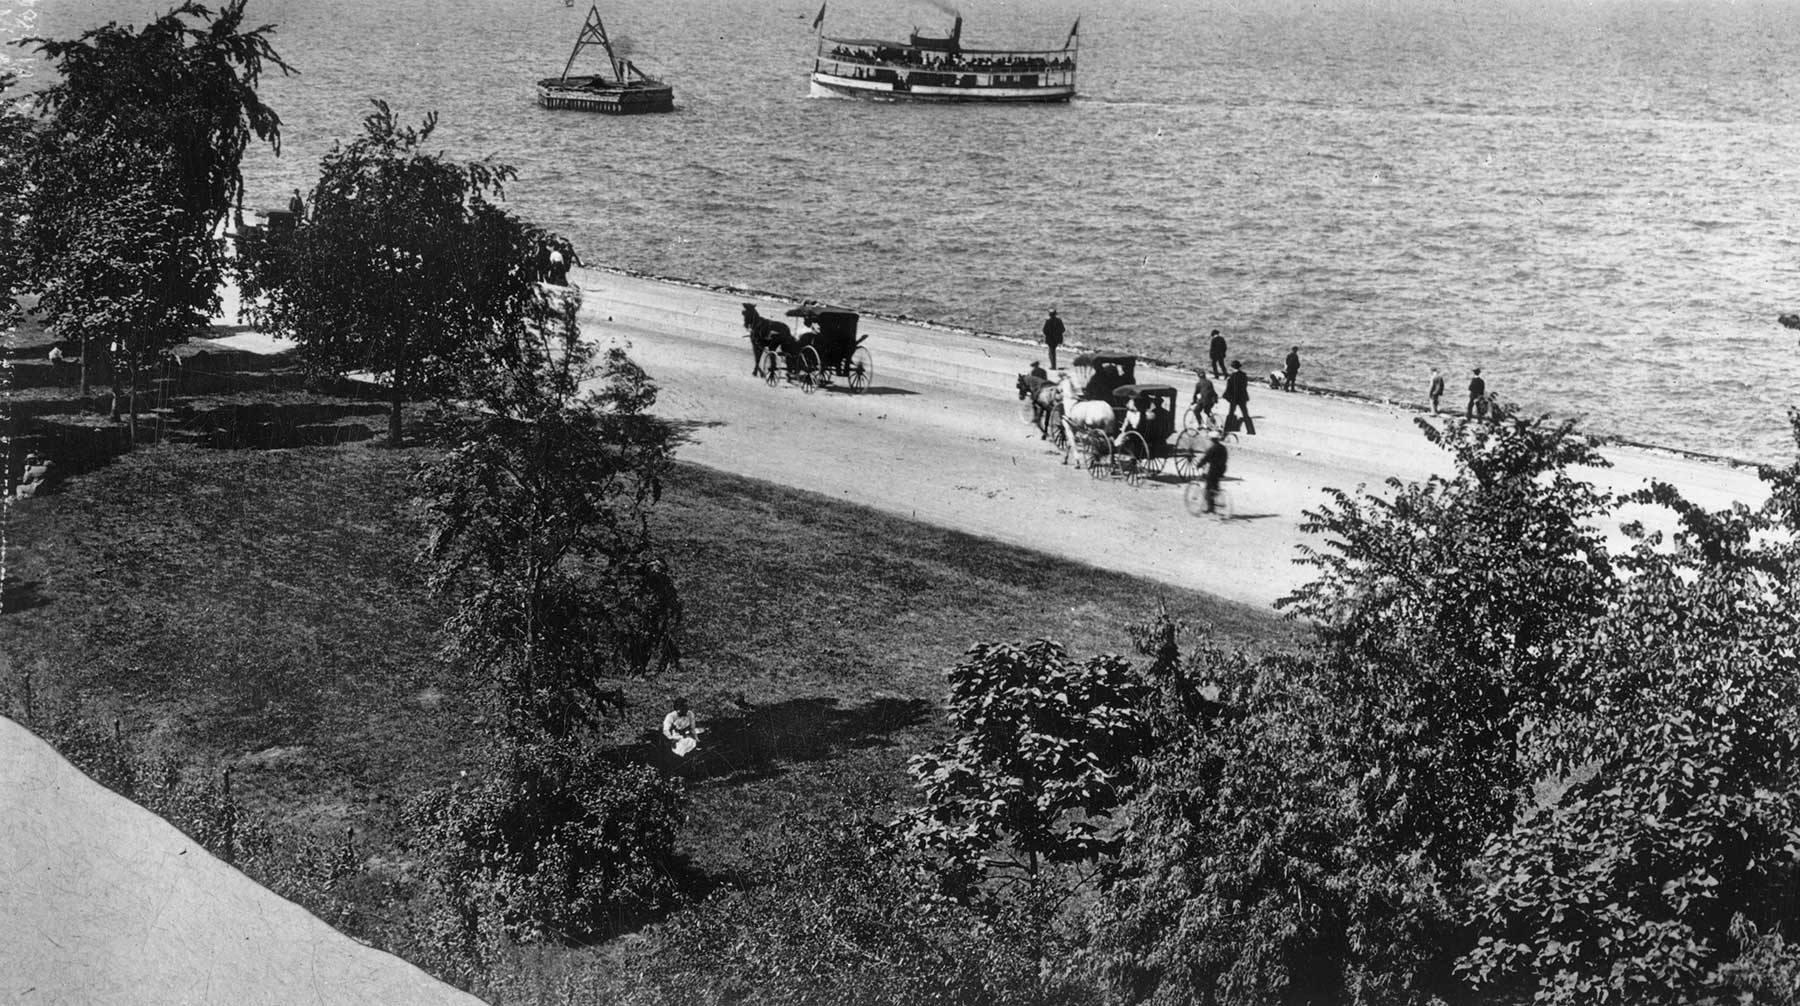 View of old Lake Shore Drive with bicycles and carriages, ca. 1895, Chicago Park District Records: Photographs, Special Collections, Chicago Public Library.